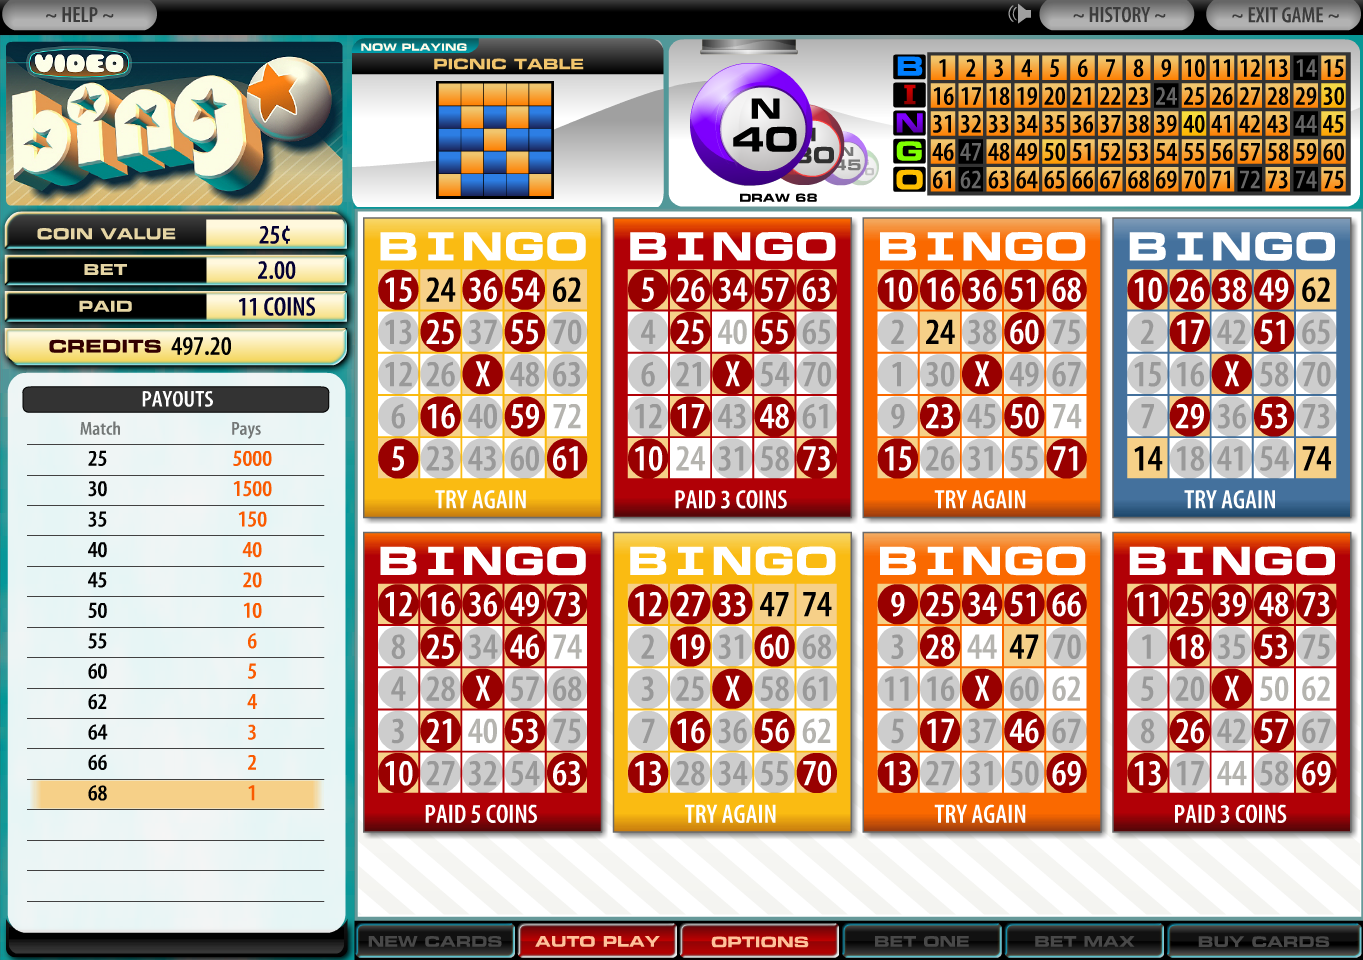 Bingo games at casinos casino jobs in primm nevada